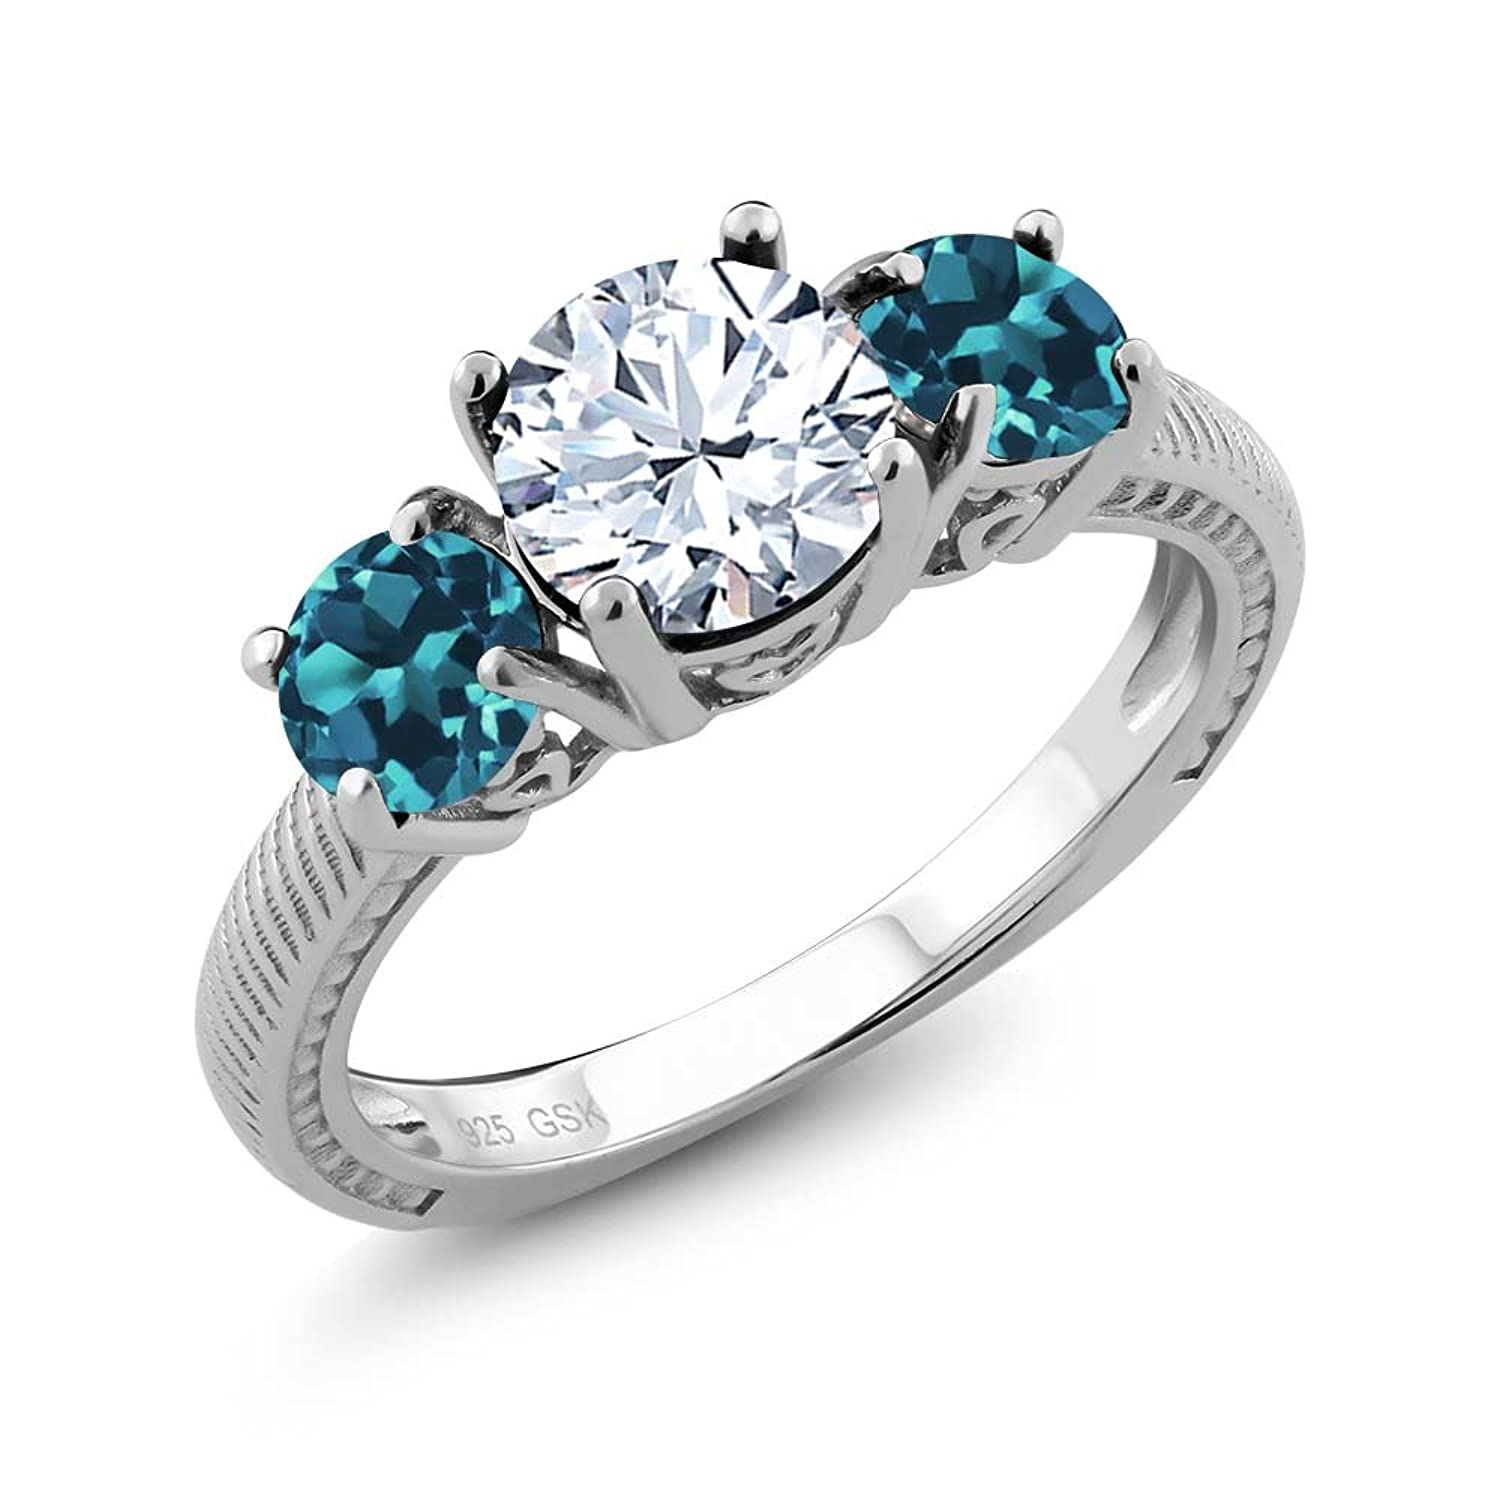 2.40 Ct Round White Topaz London Blue Topaz 925 Sterling Silver Ring